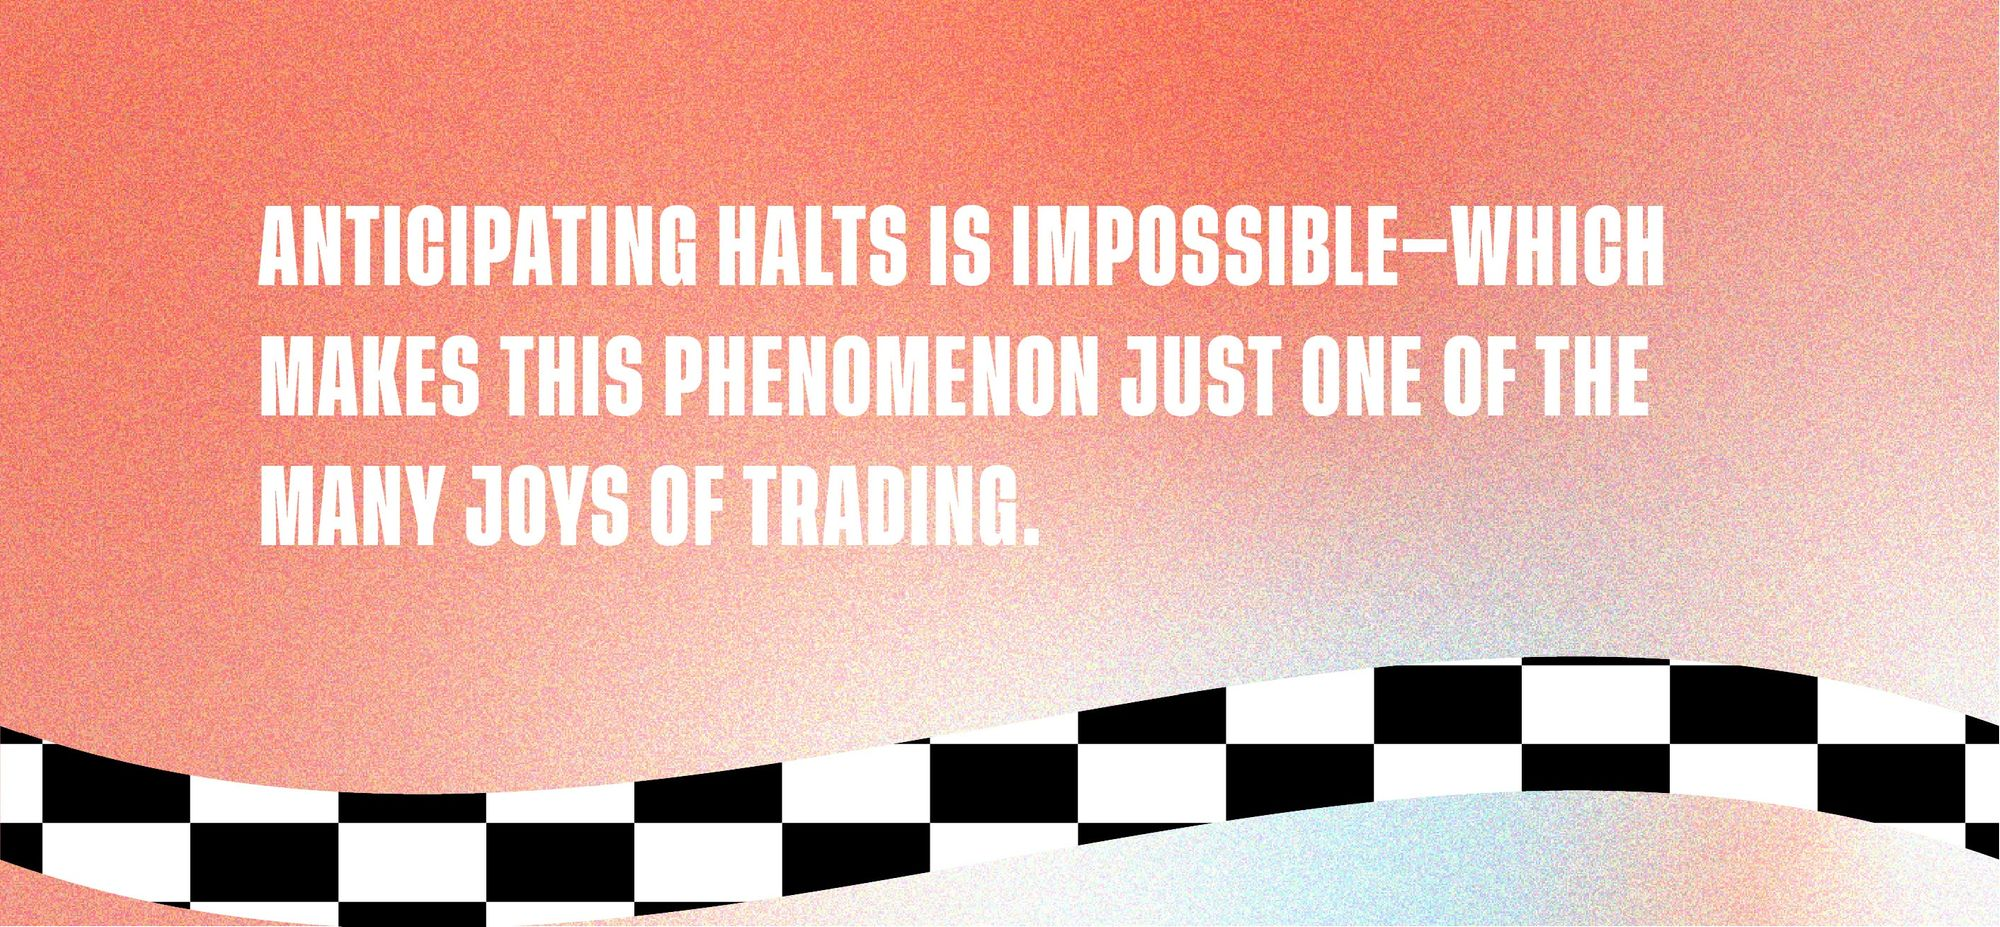 Anticipating halts is impossible - which makes this phenomenon just one of the many joys of trading.